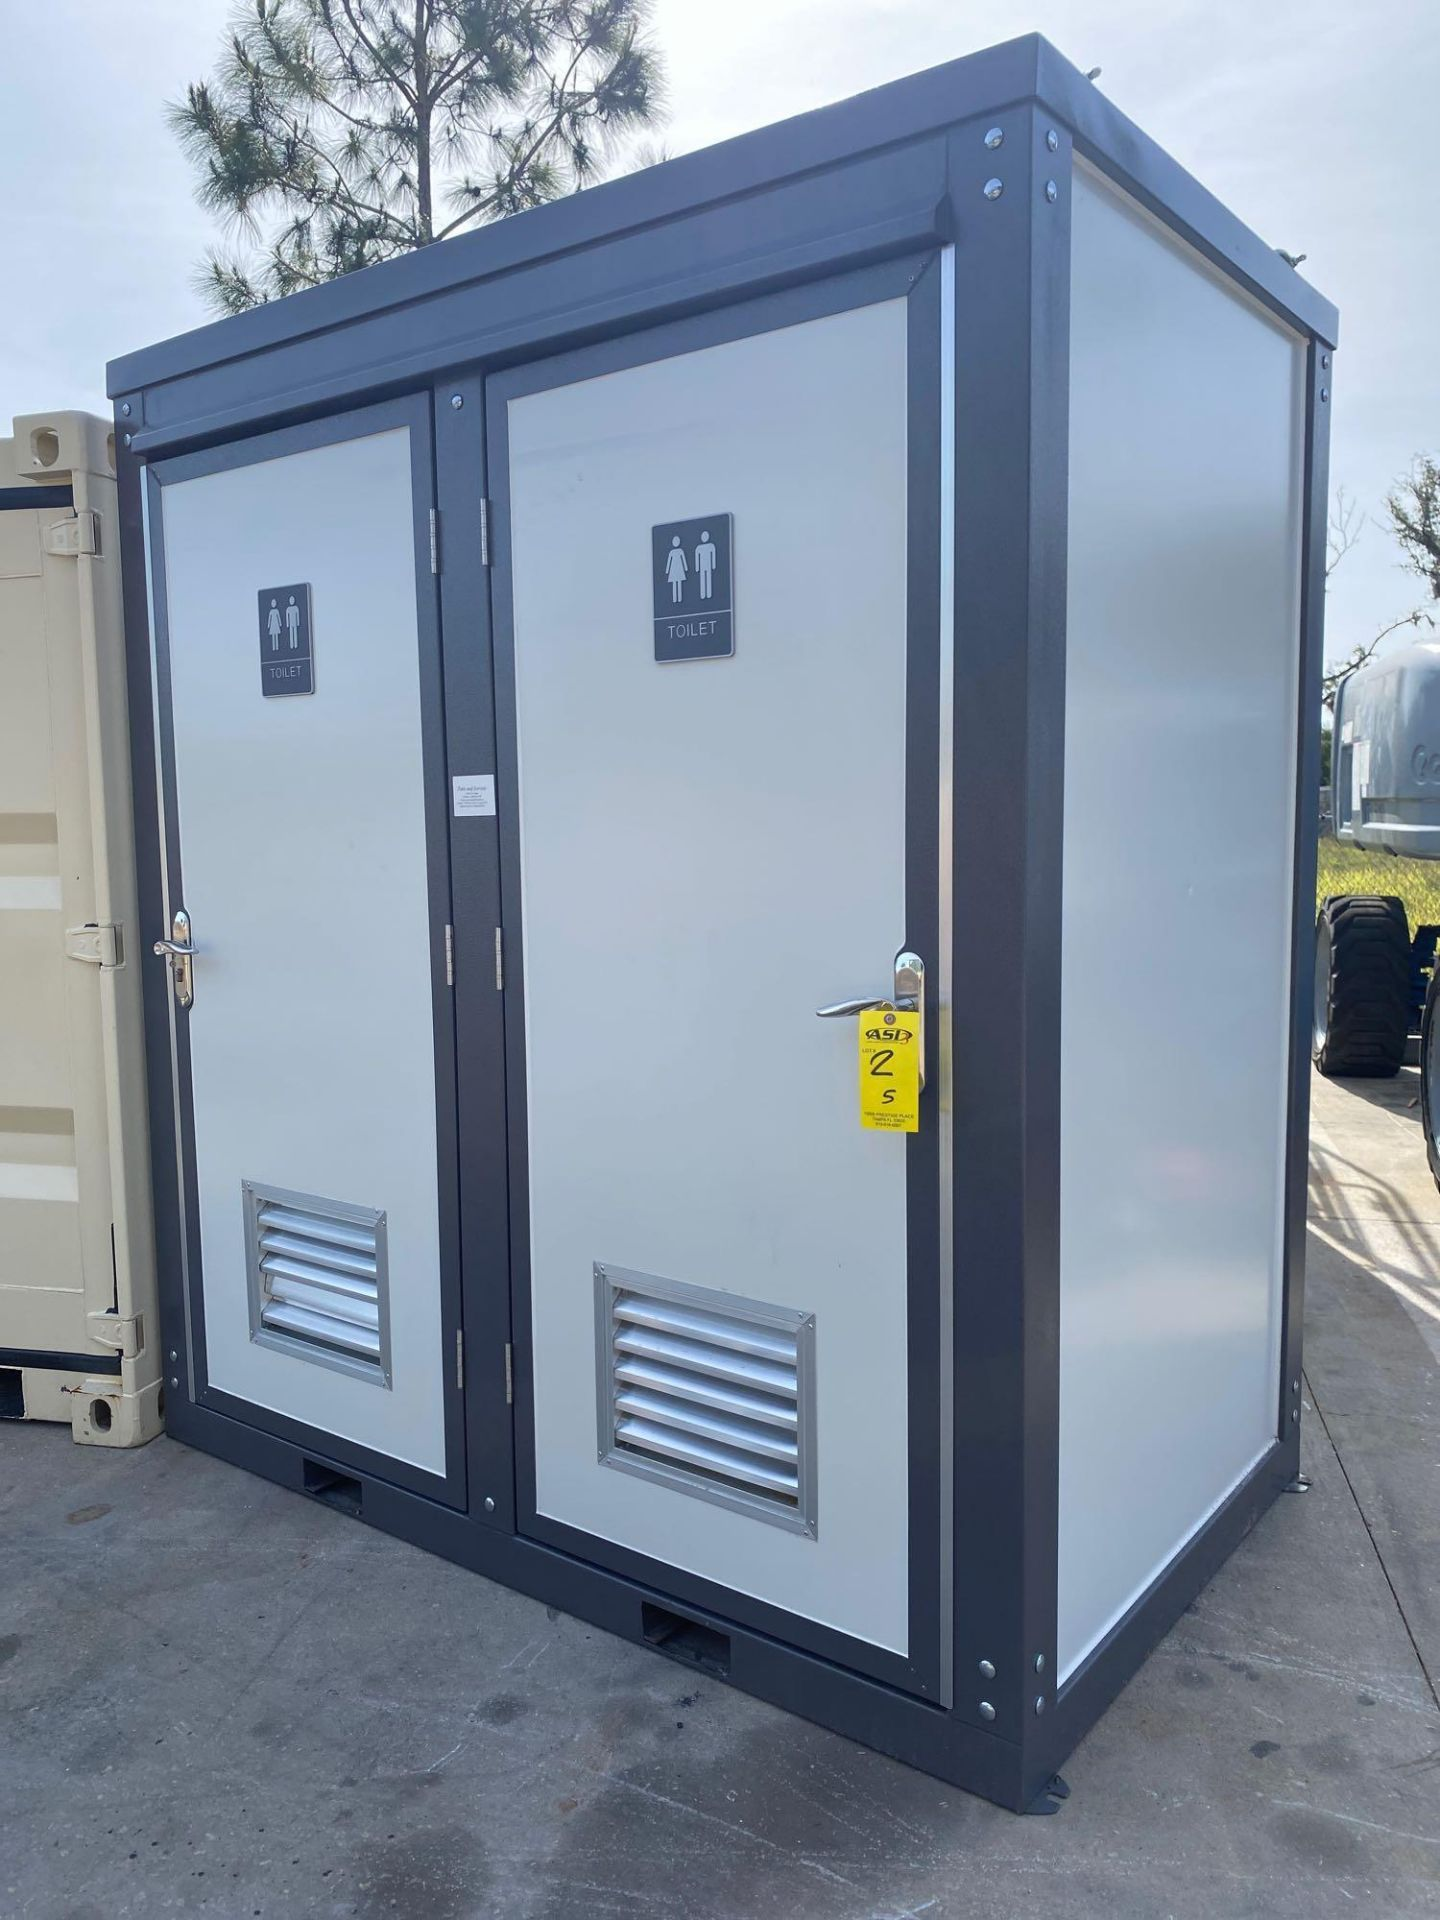 """Lot 2 - NEW/UNUSED PORTABLE BATHROOM UNIT, TWO STALLS, PLUMBING AND ELECTRIC HOOKUP, 81"""" WIDE 90"""" TALL 51"""" D"""